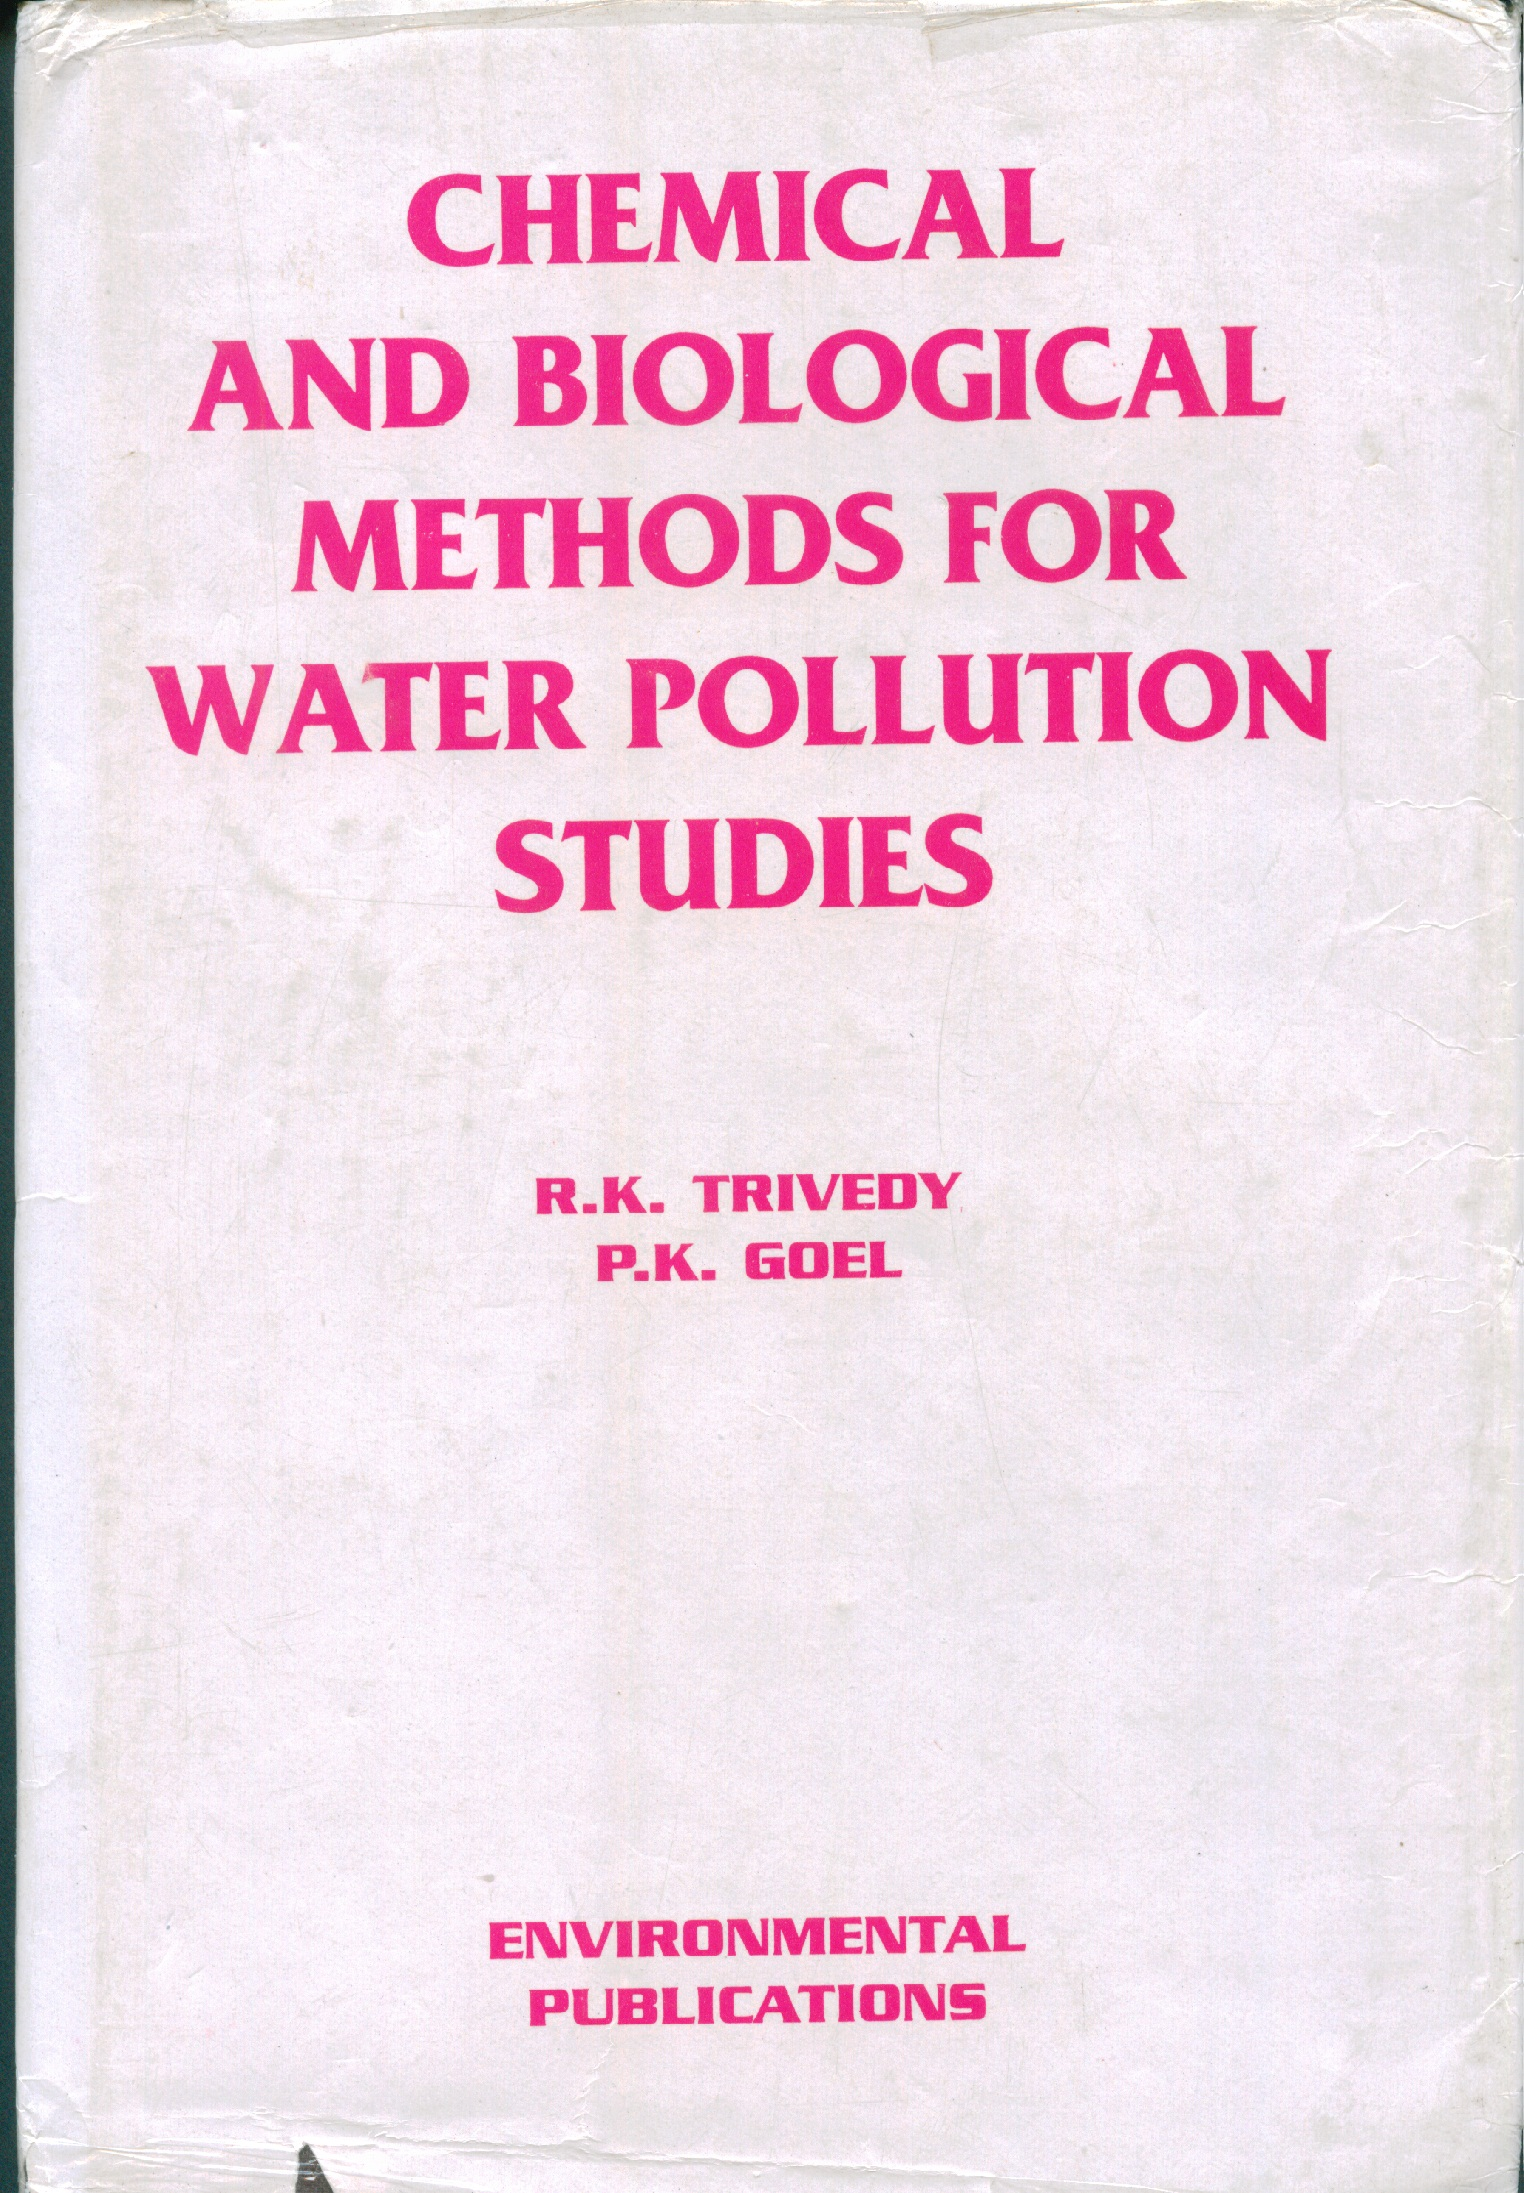 Chemical and Biological Methods for Water Pollution Studies